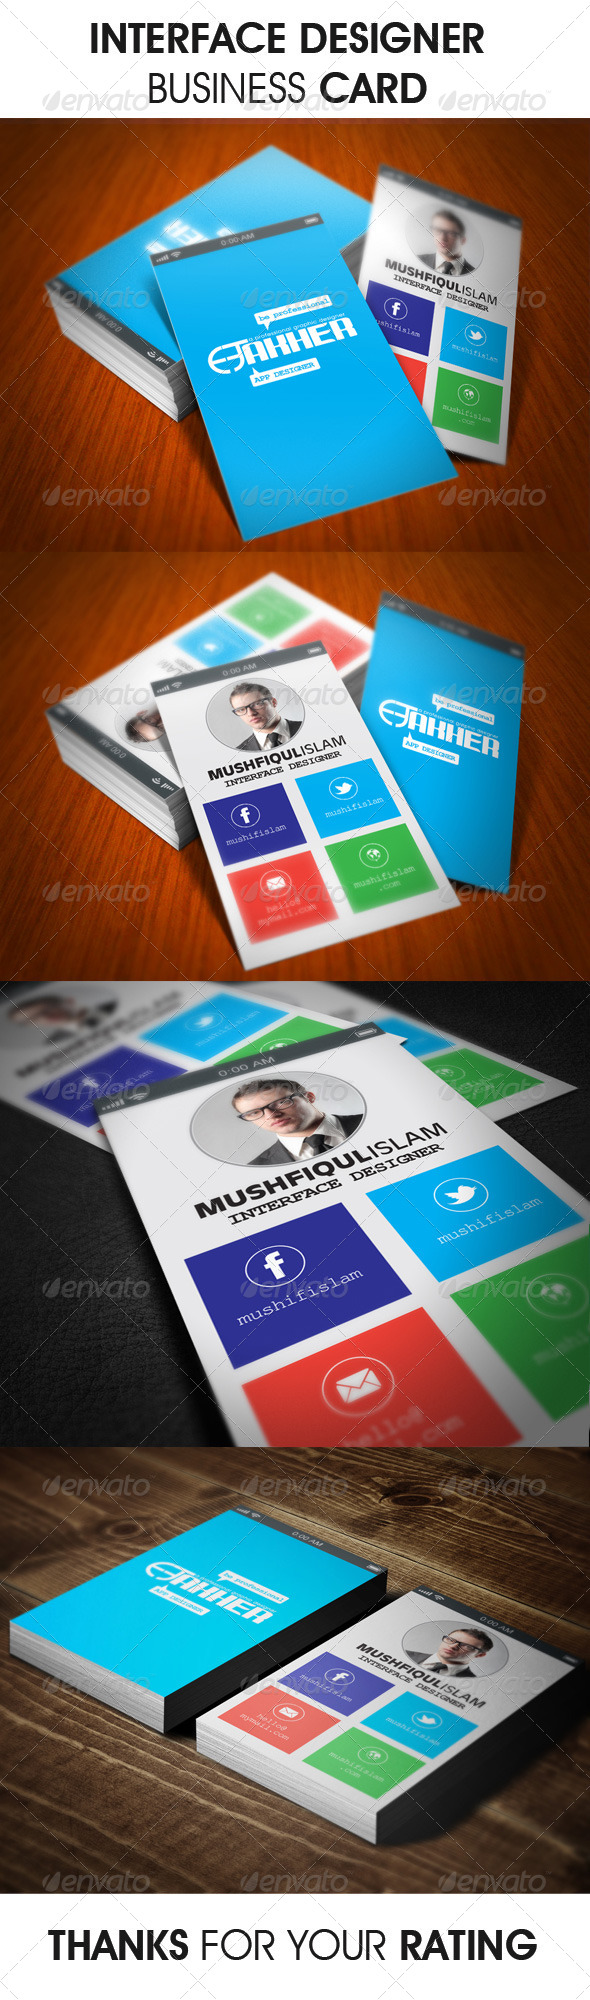 GraphicRiver Interface Designer Business Card 6232973